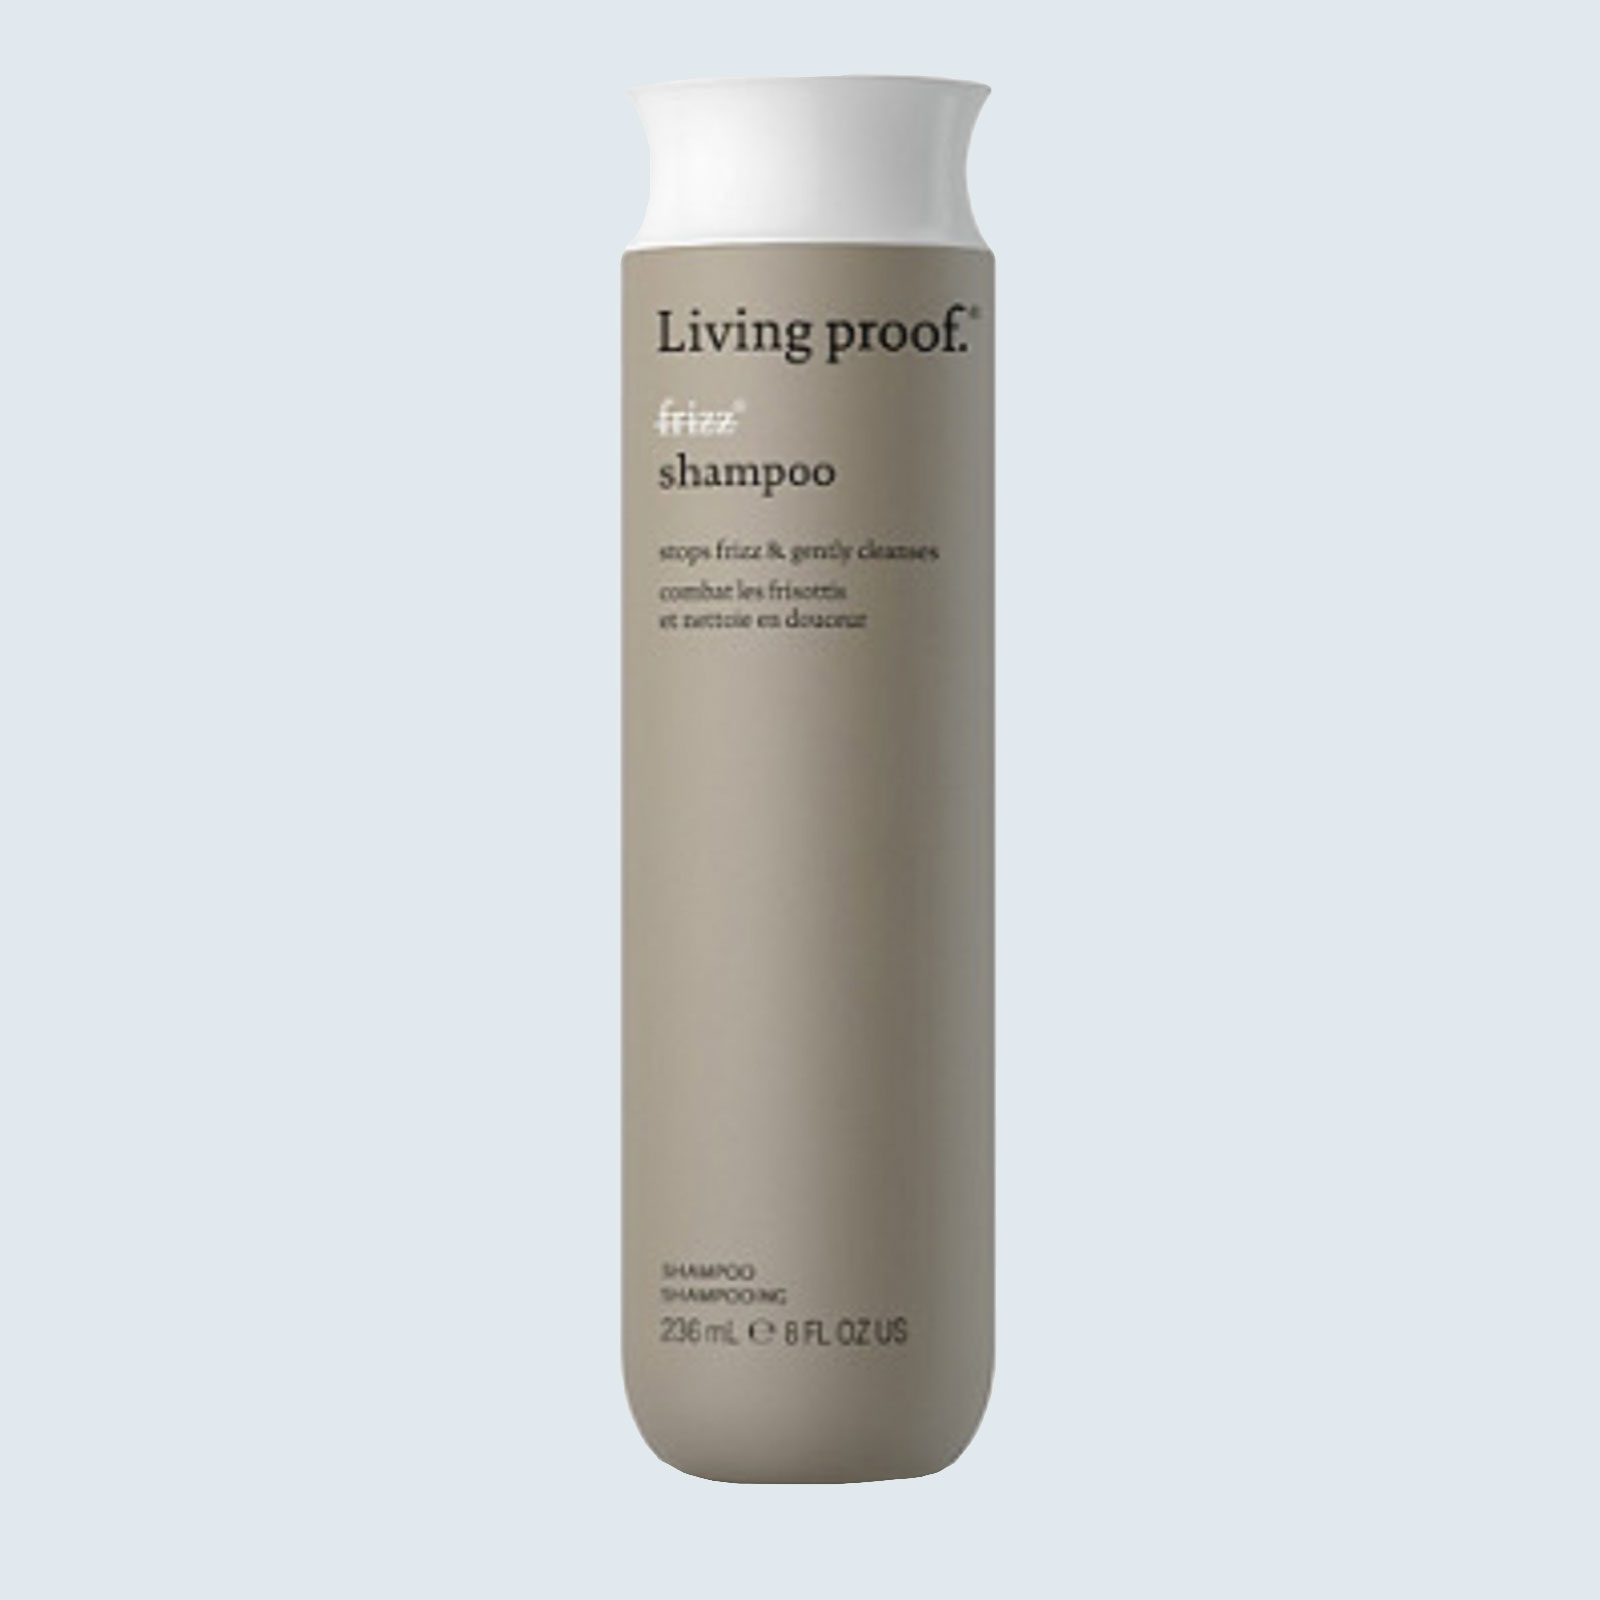 Best overall shampoo for curly hair: Living Proof Anti-Frizz Shampoo